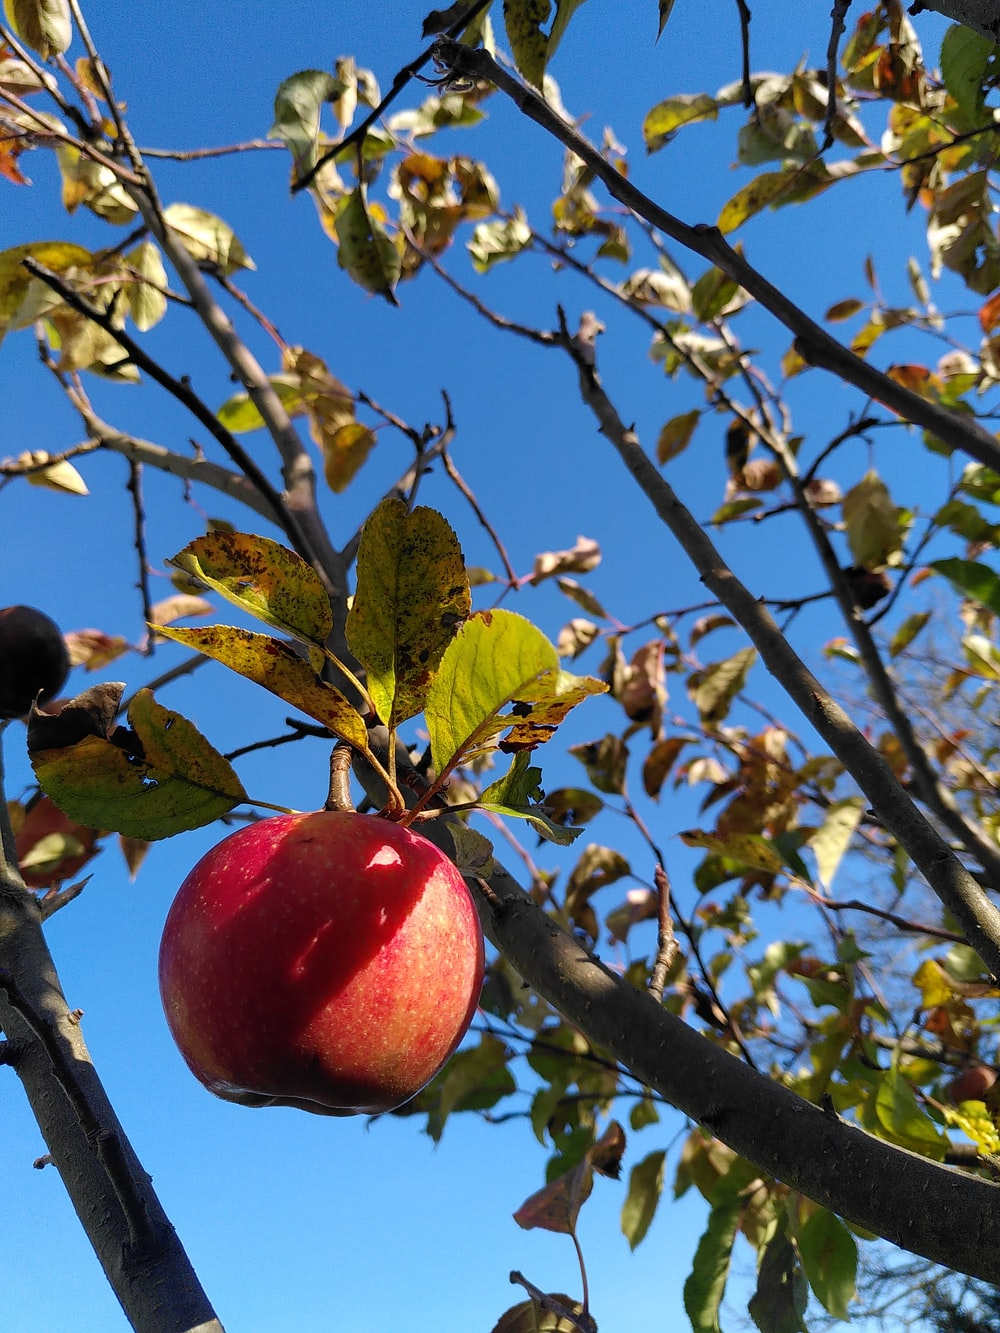 red apple on tree branch during daytime